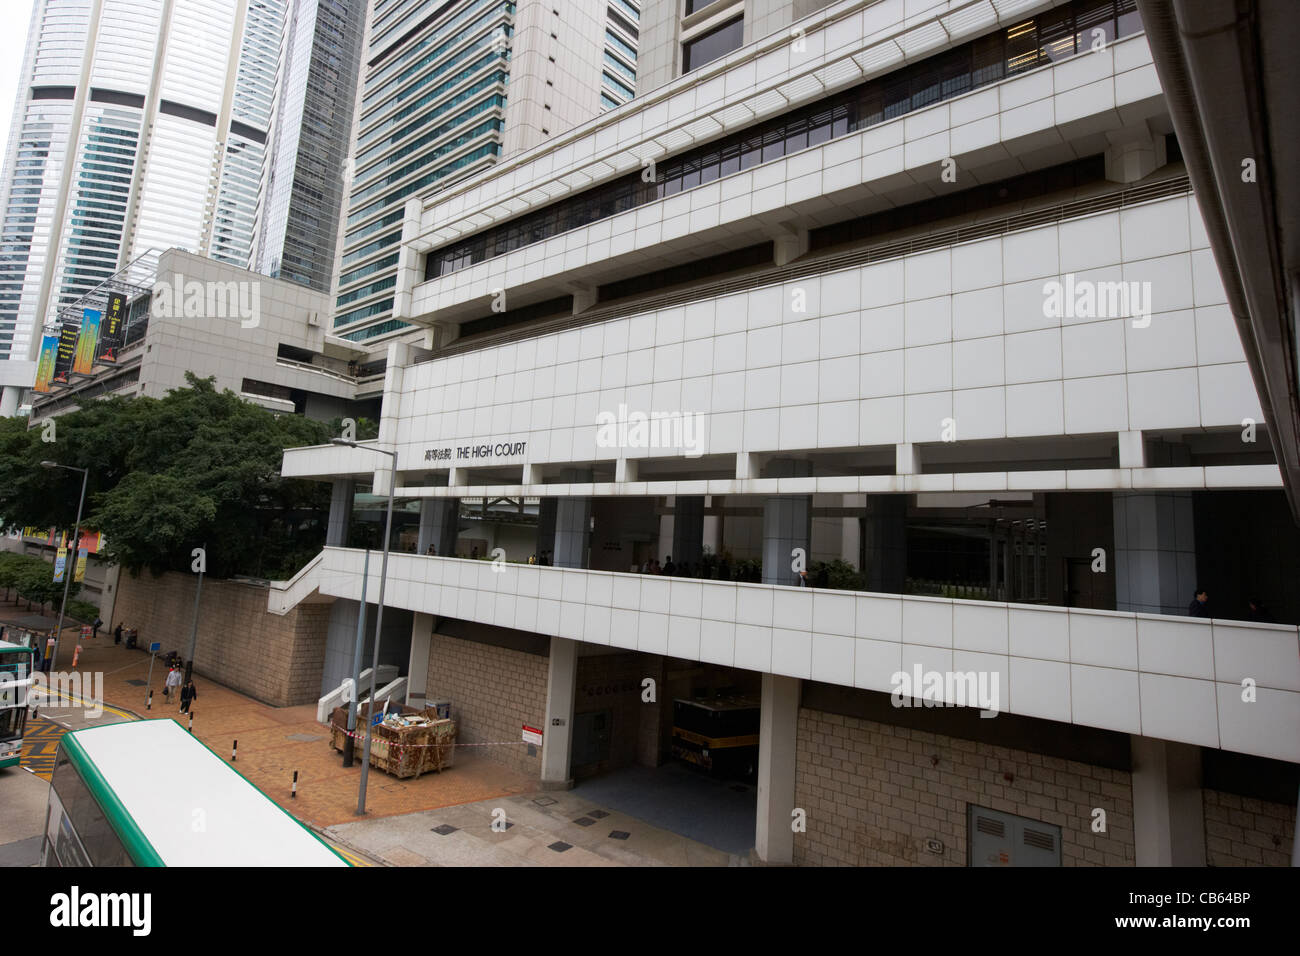 the hong kong high court including court of appeal and court of first instance in admiralty district, hong kong - Stock Image